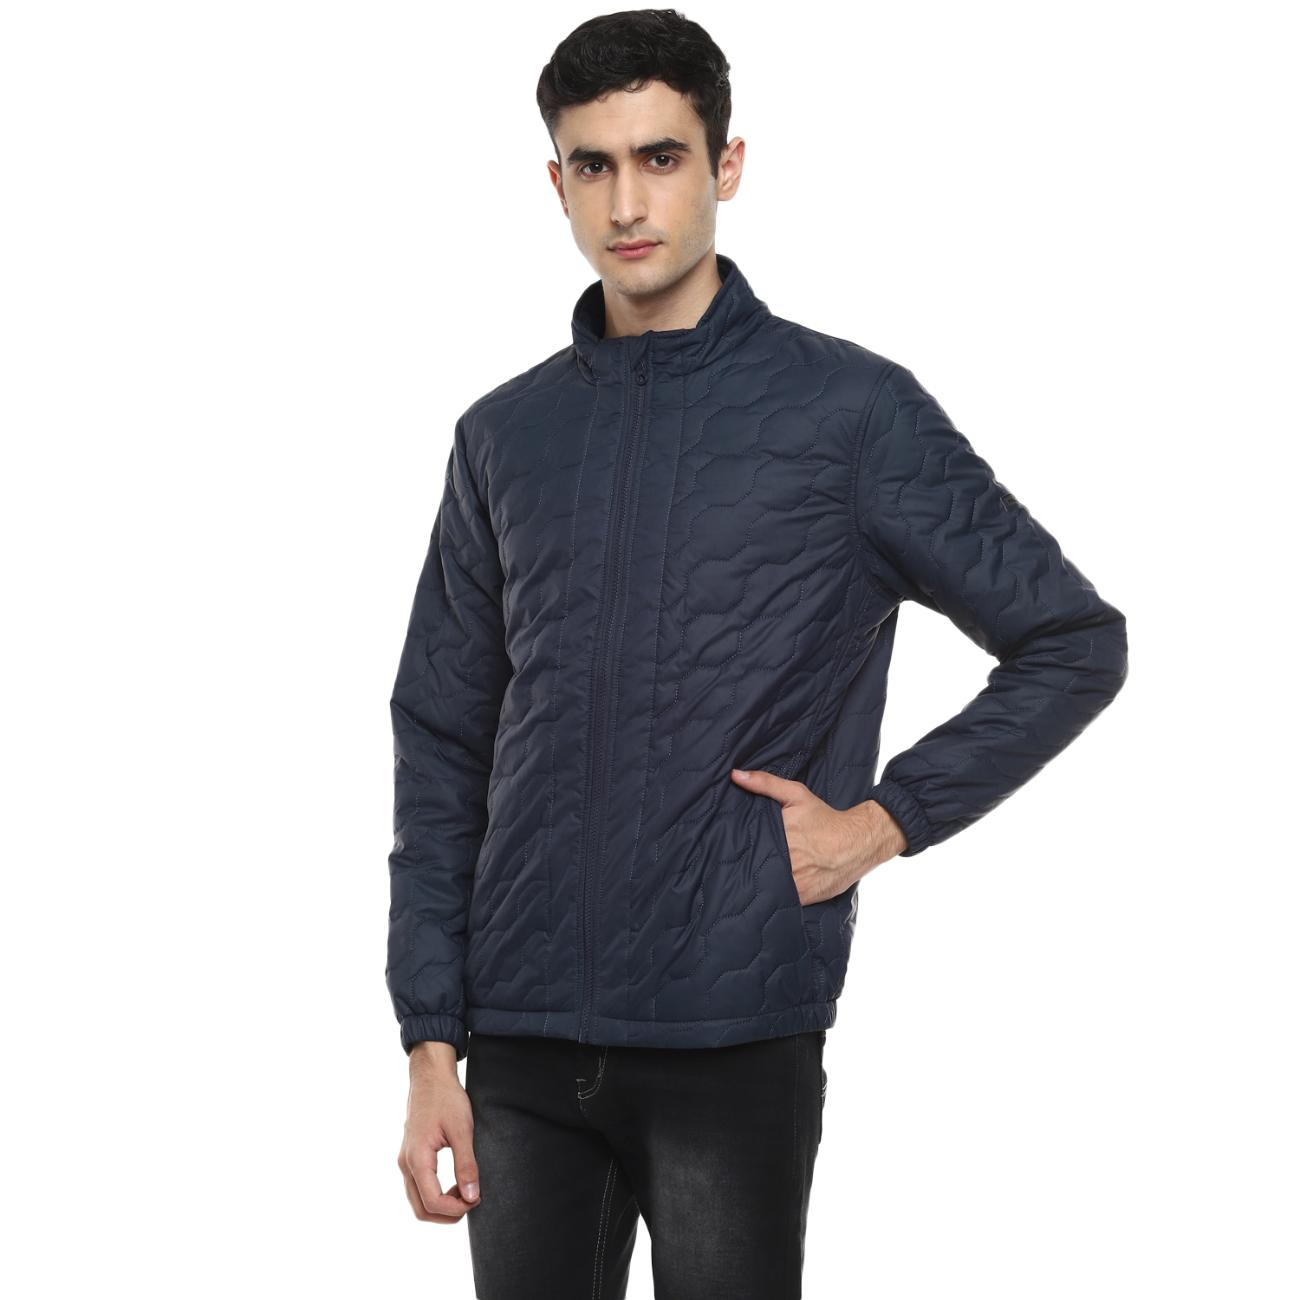 Red Chief's Navy Jacket For Men